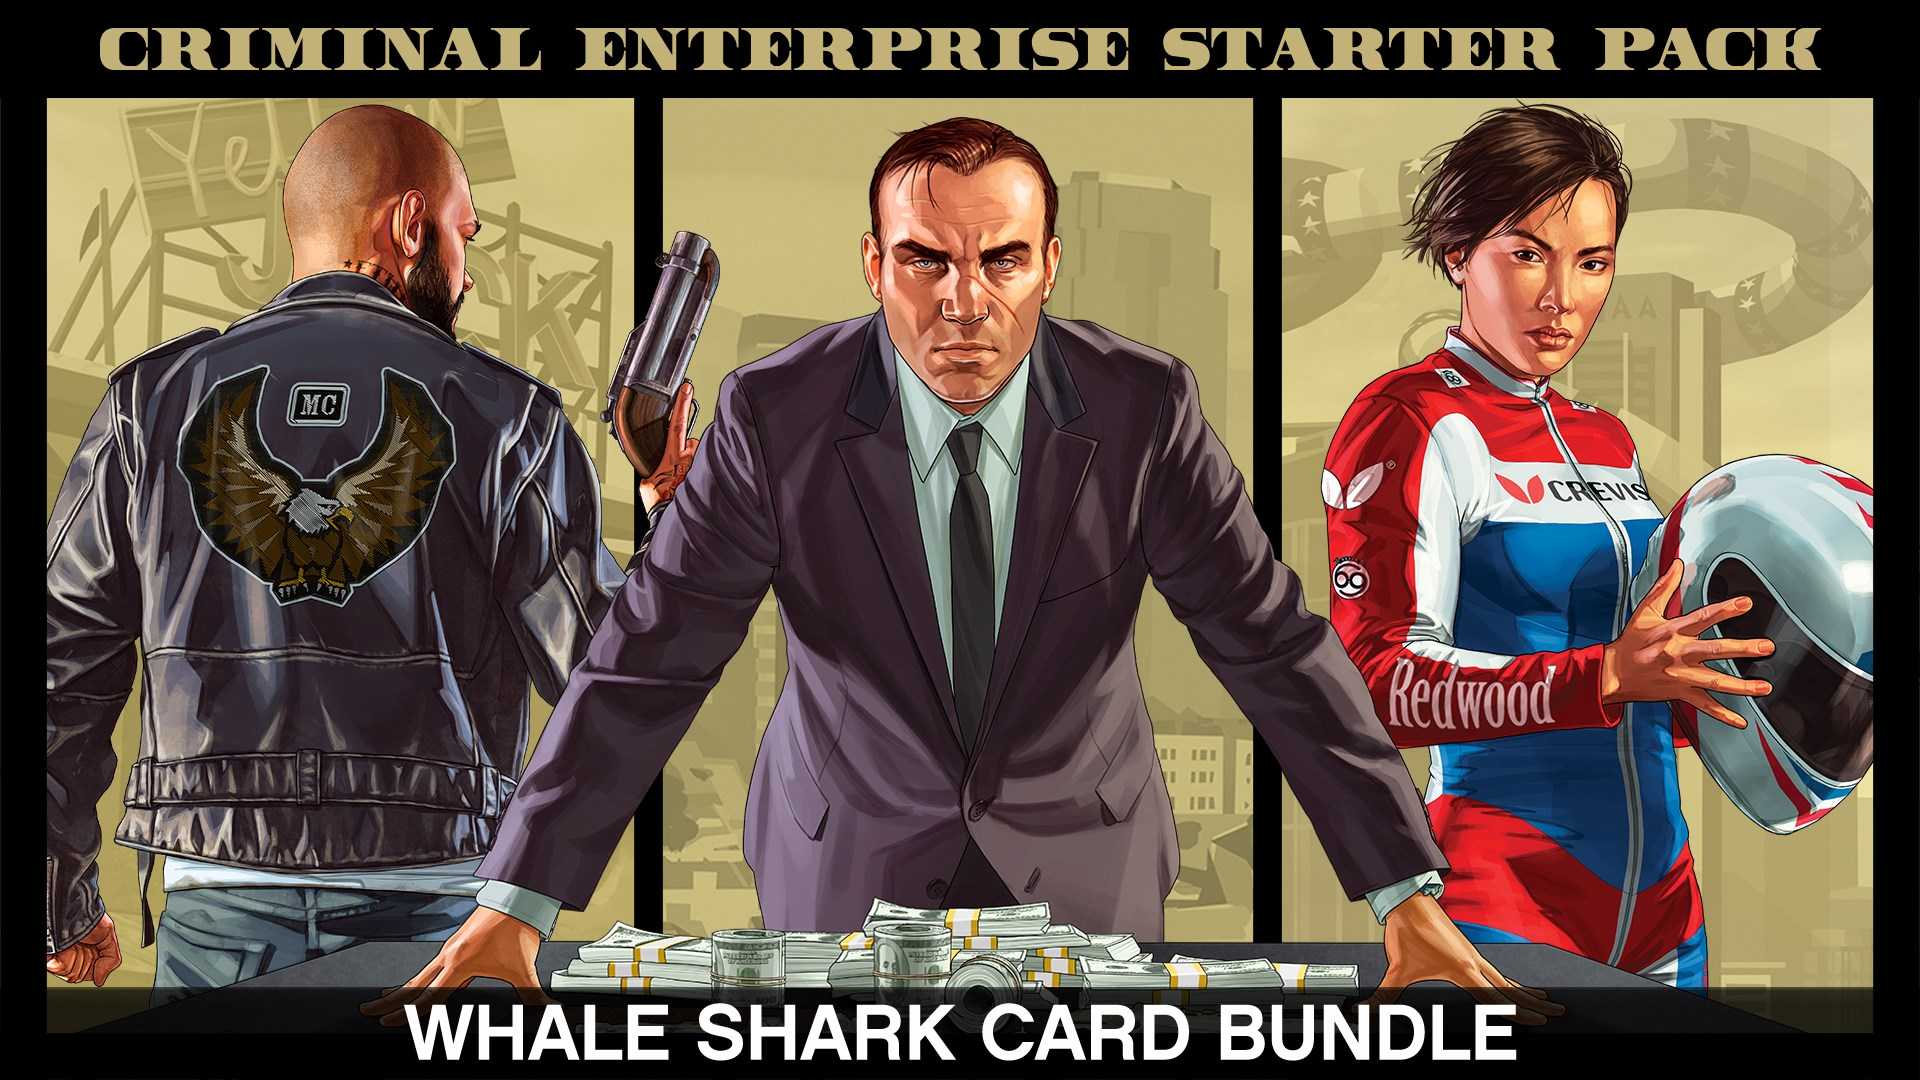 Criminal Enterprise Starter Pack and Whale Shark Card Bundle